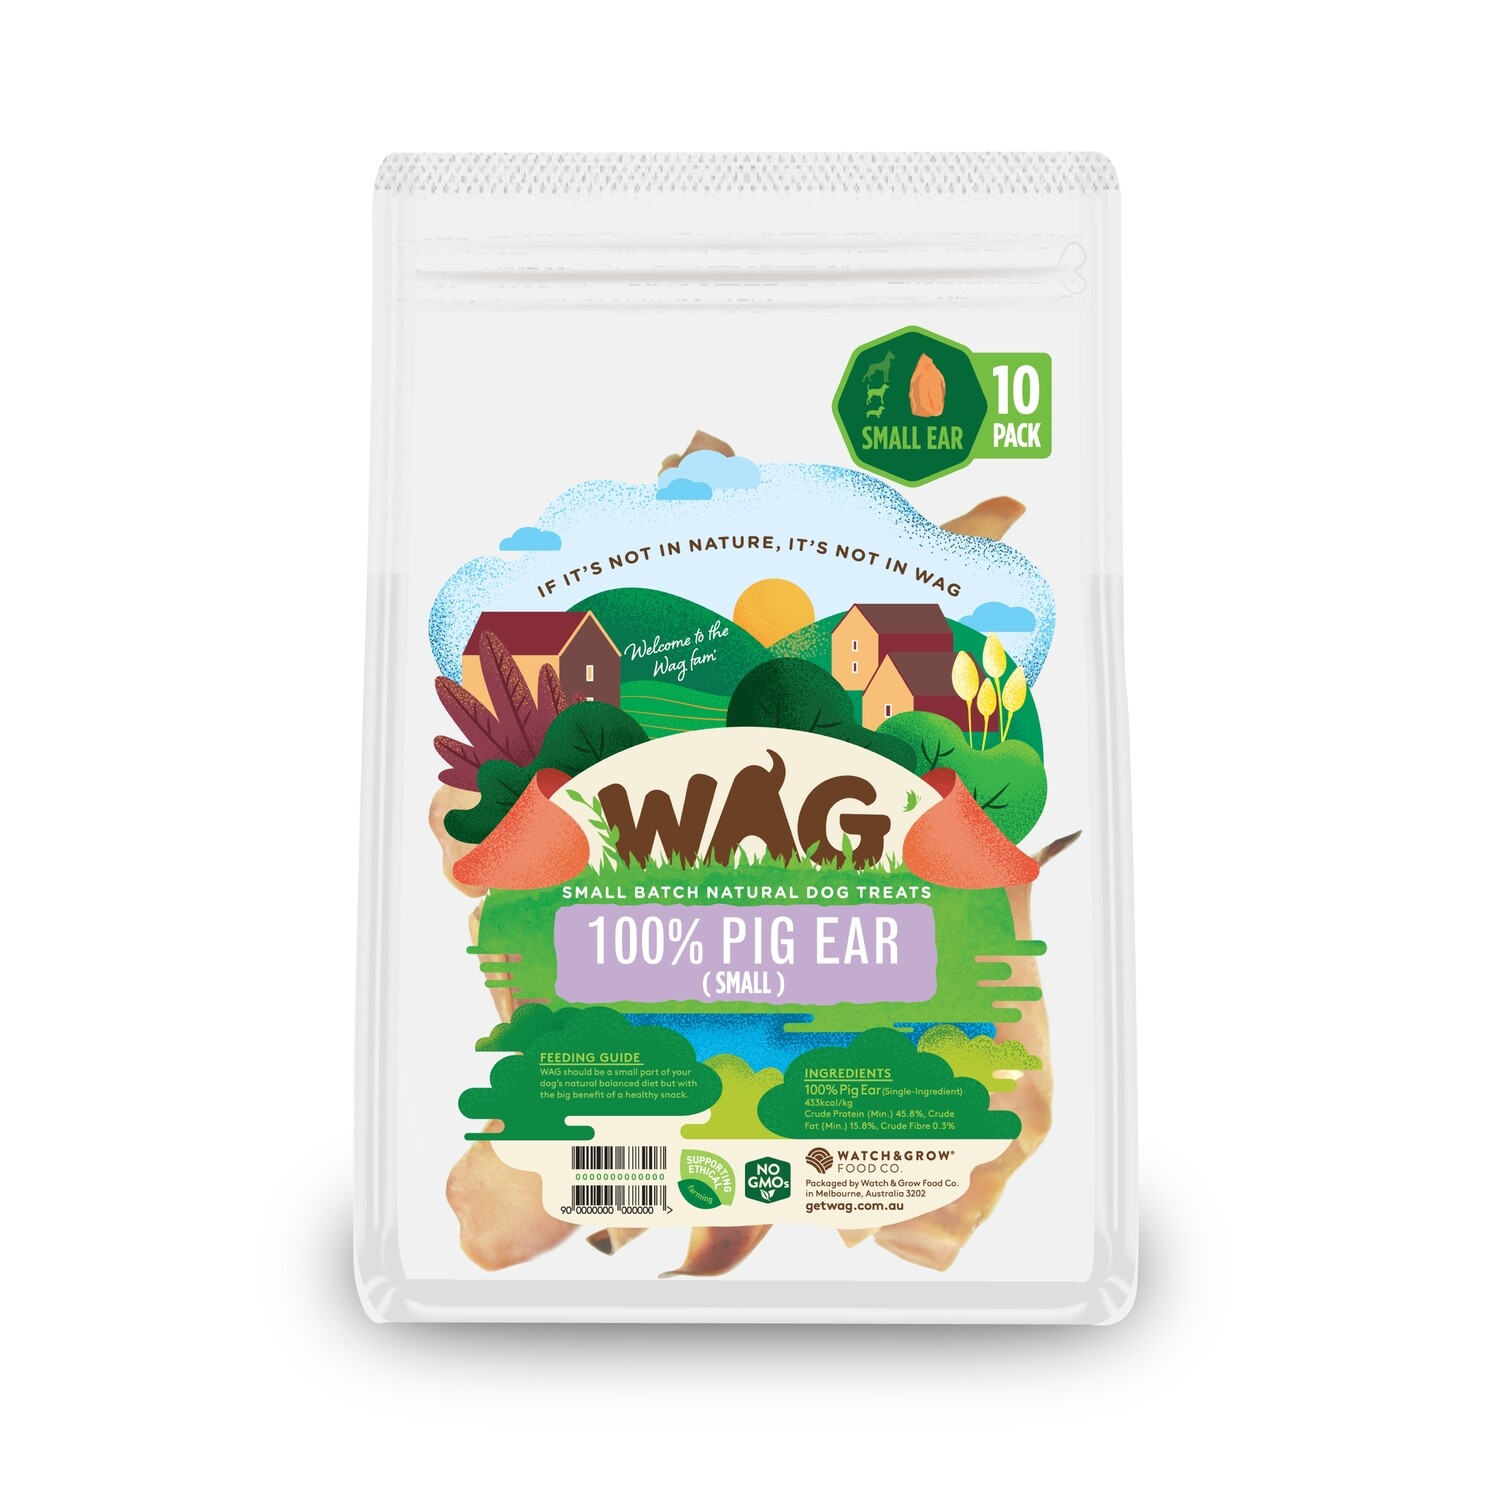 GetWag Small Pig Ears 10 in Pack.